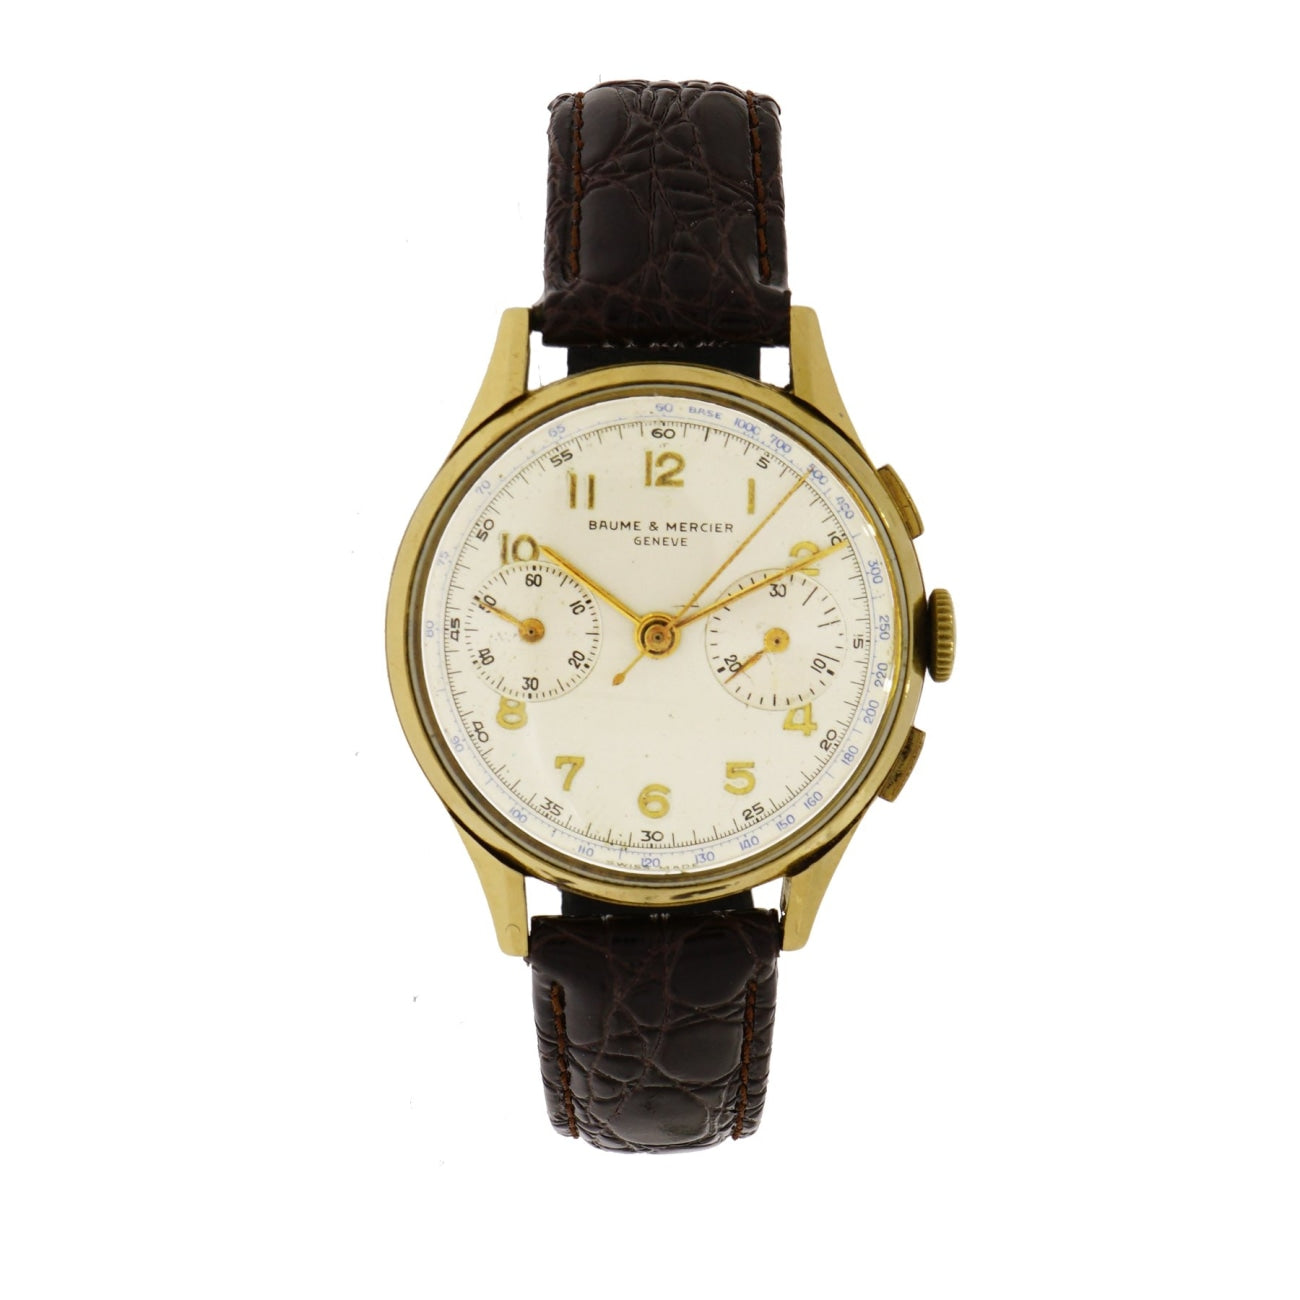 Pre-Owned Baume & Mercier Watches - Chronograph | Manfredi Jewels